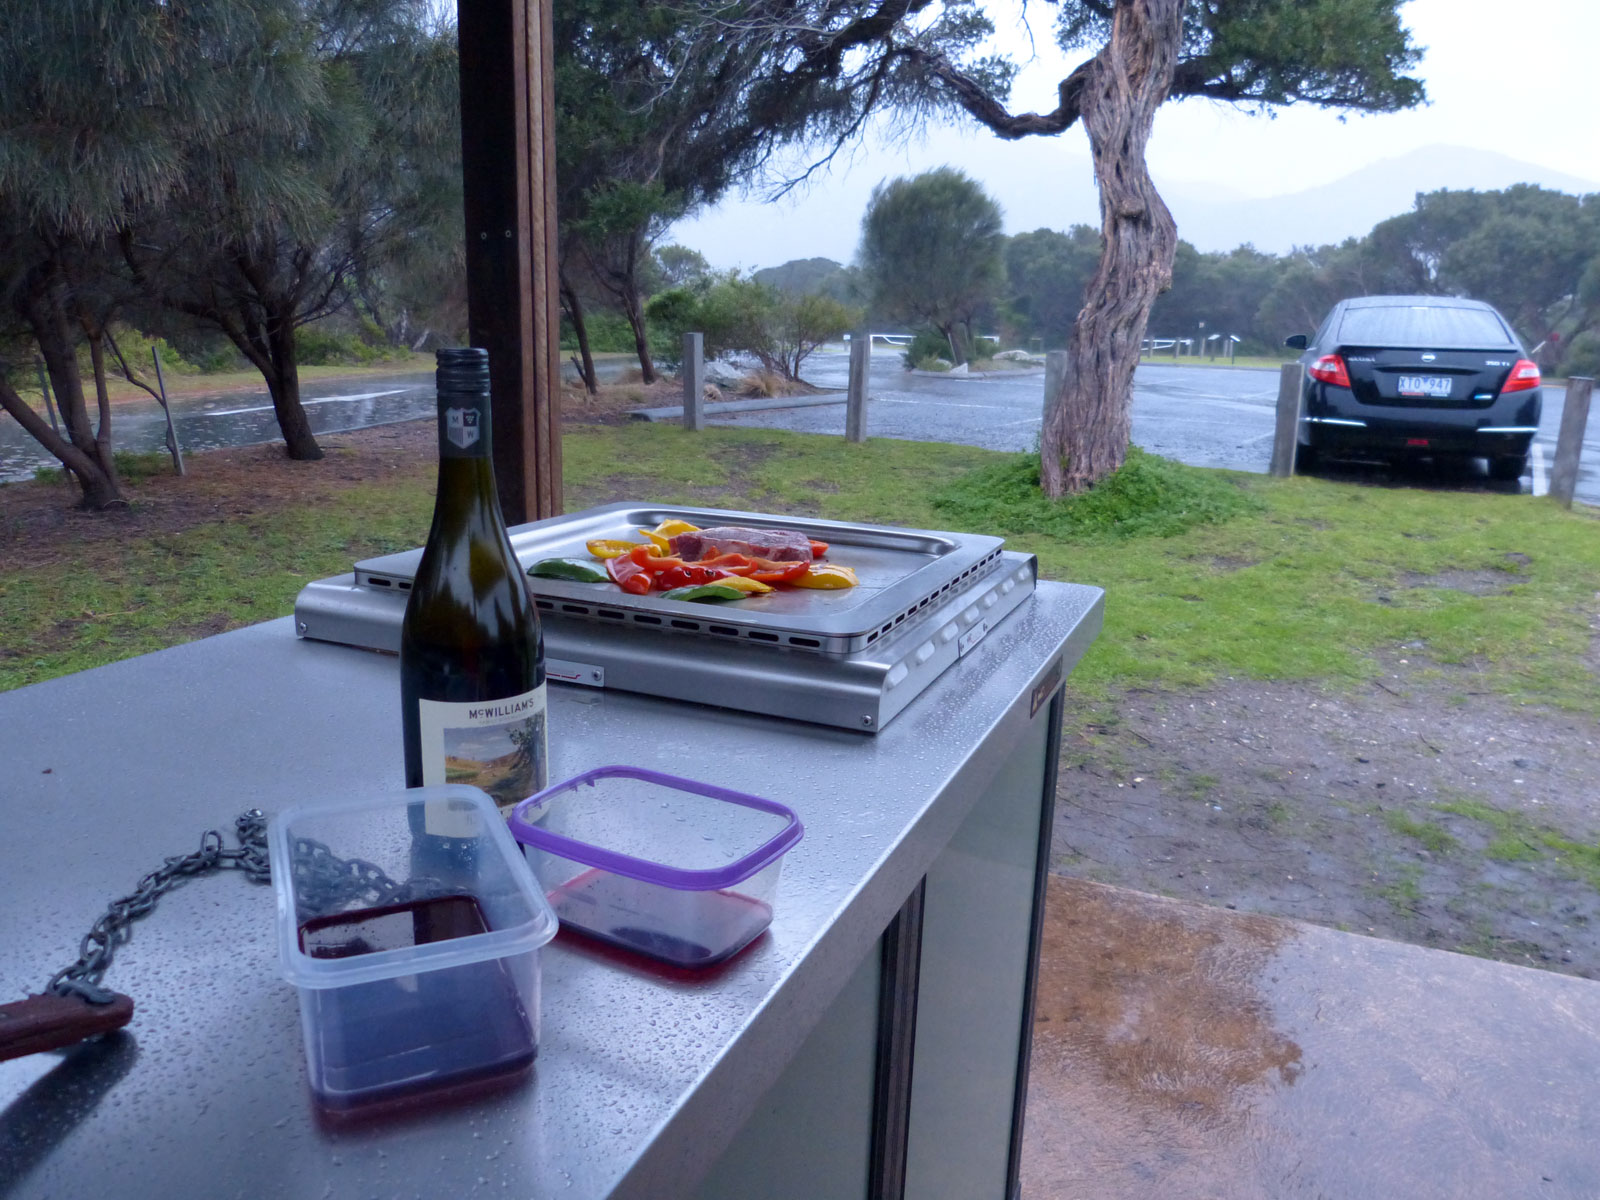 All set up for BBQ in the rain